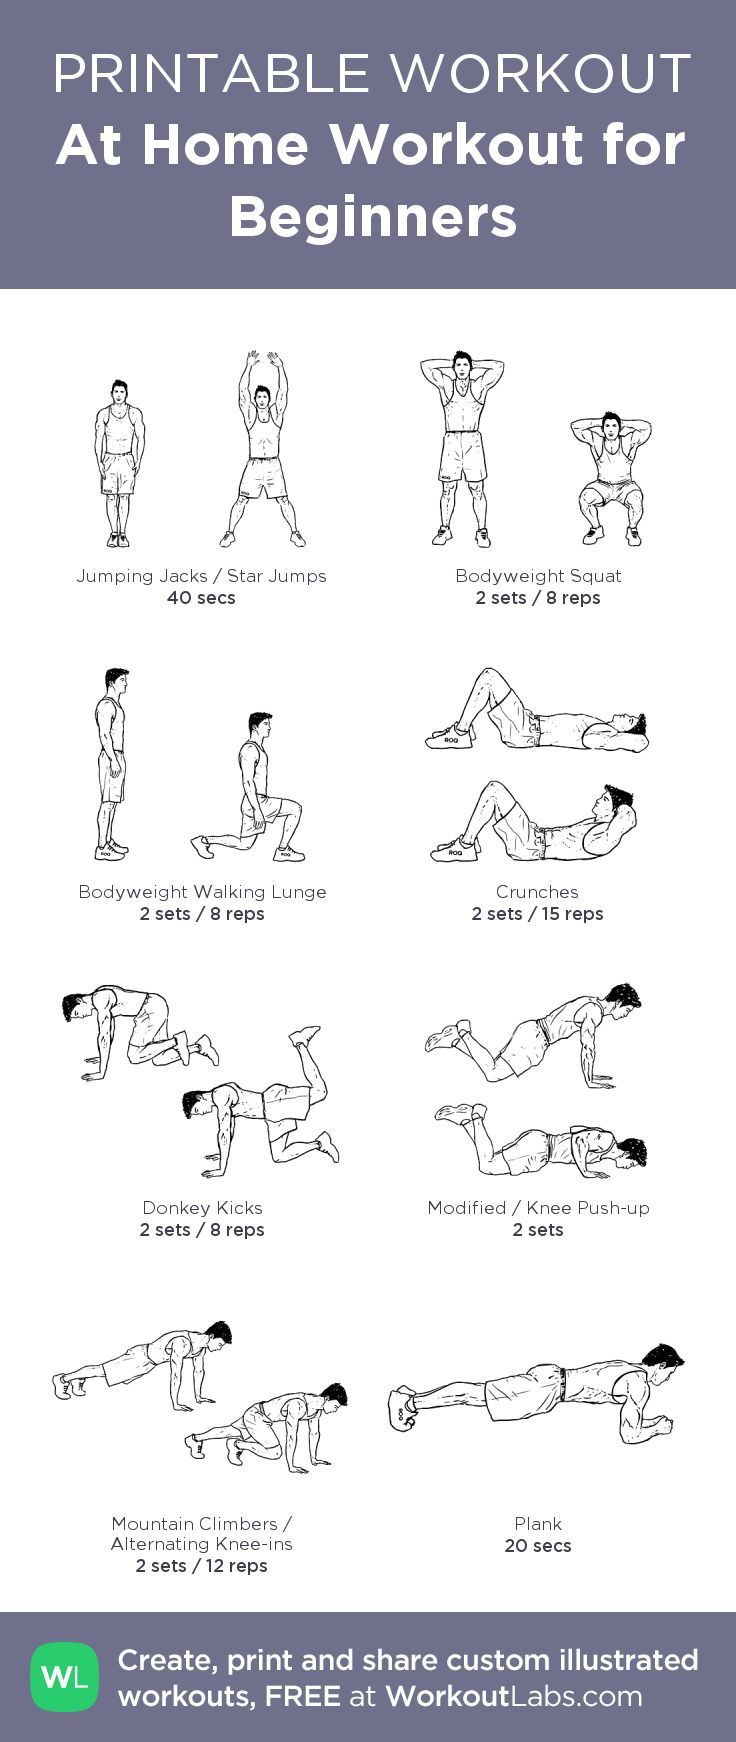 At Home Full Body Workout for Beginners (Men) from WorkoutLabs.com • Click through to download as printable PDF! #customworkout